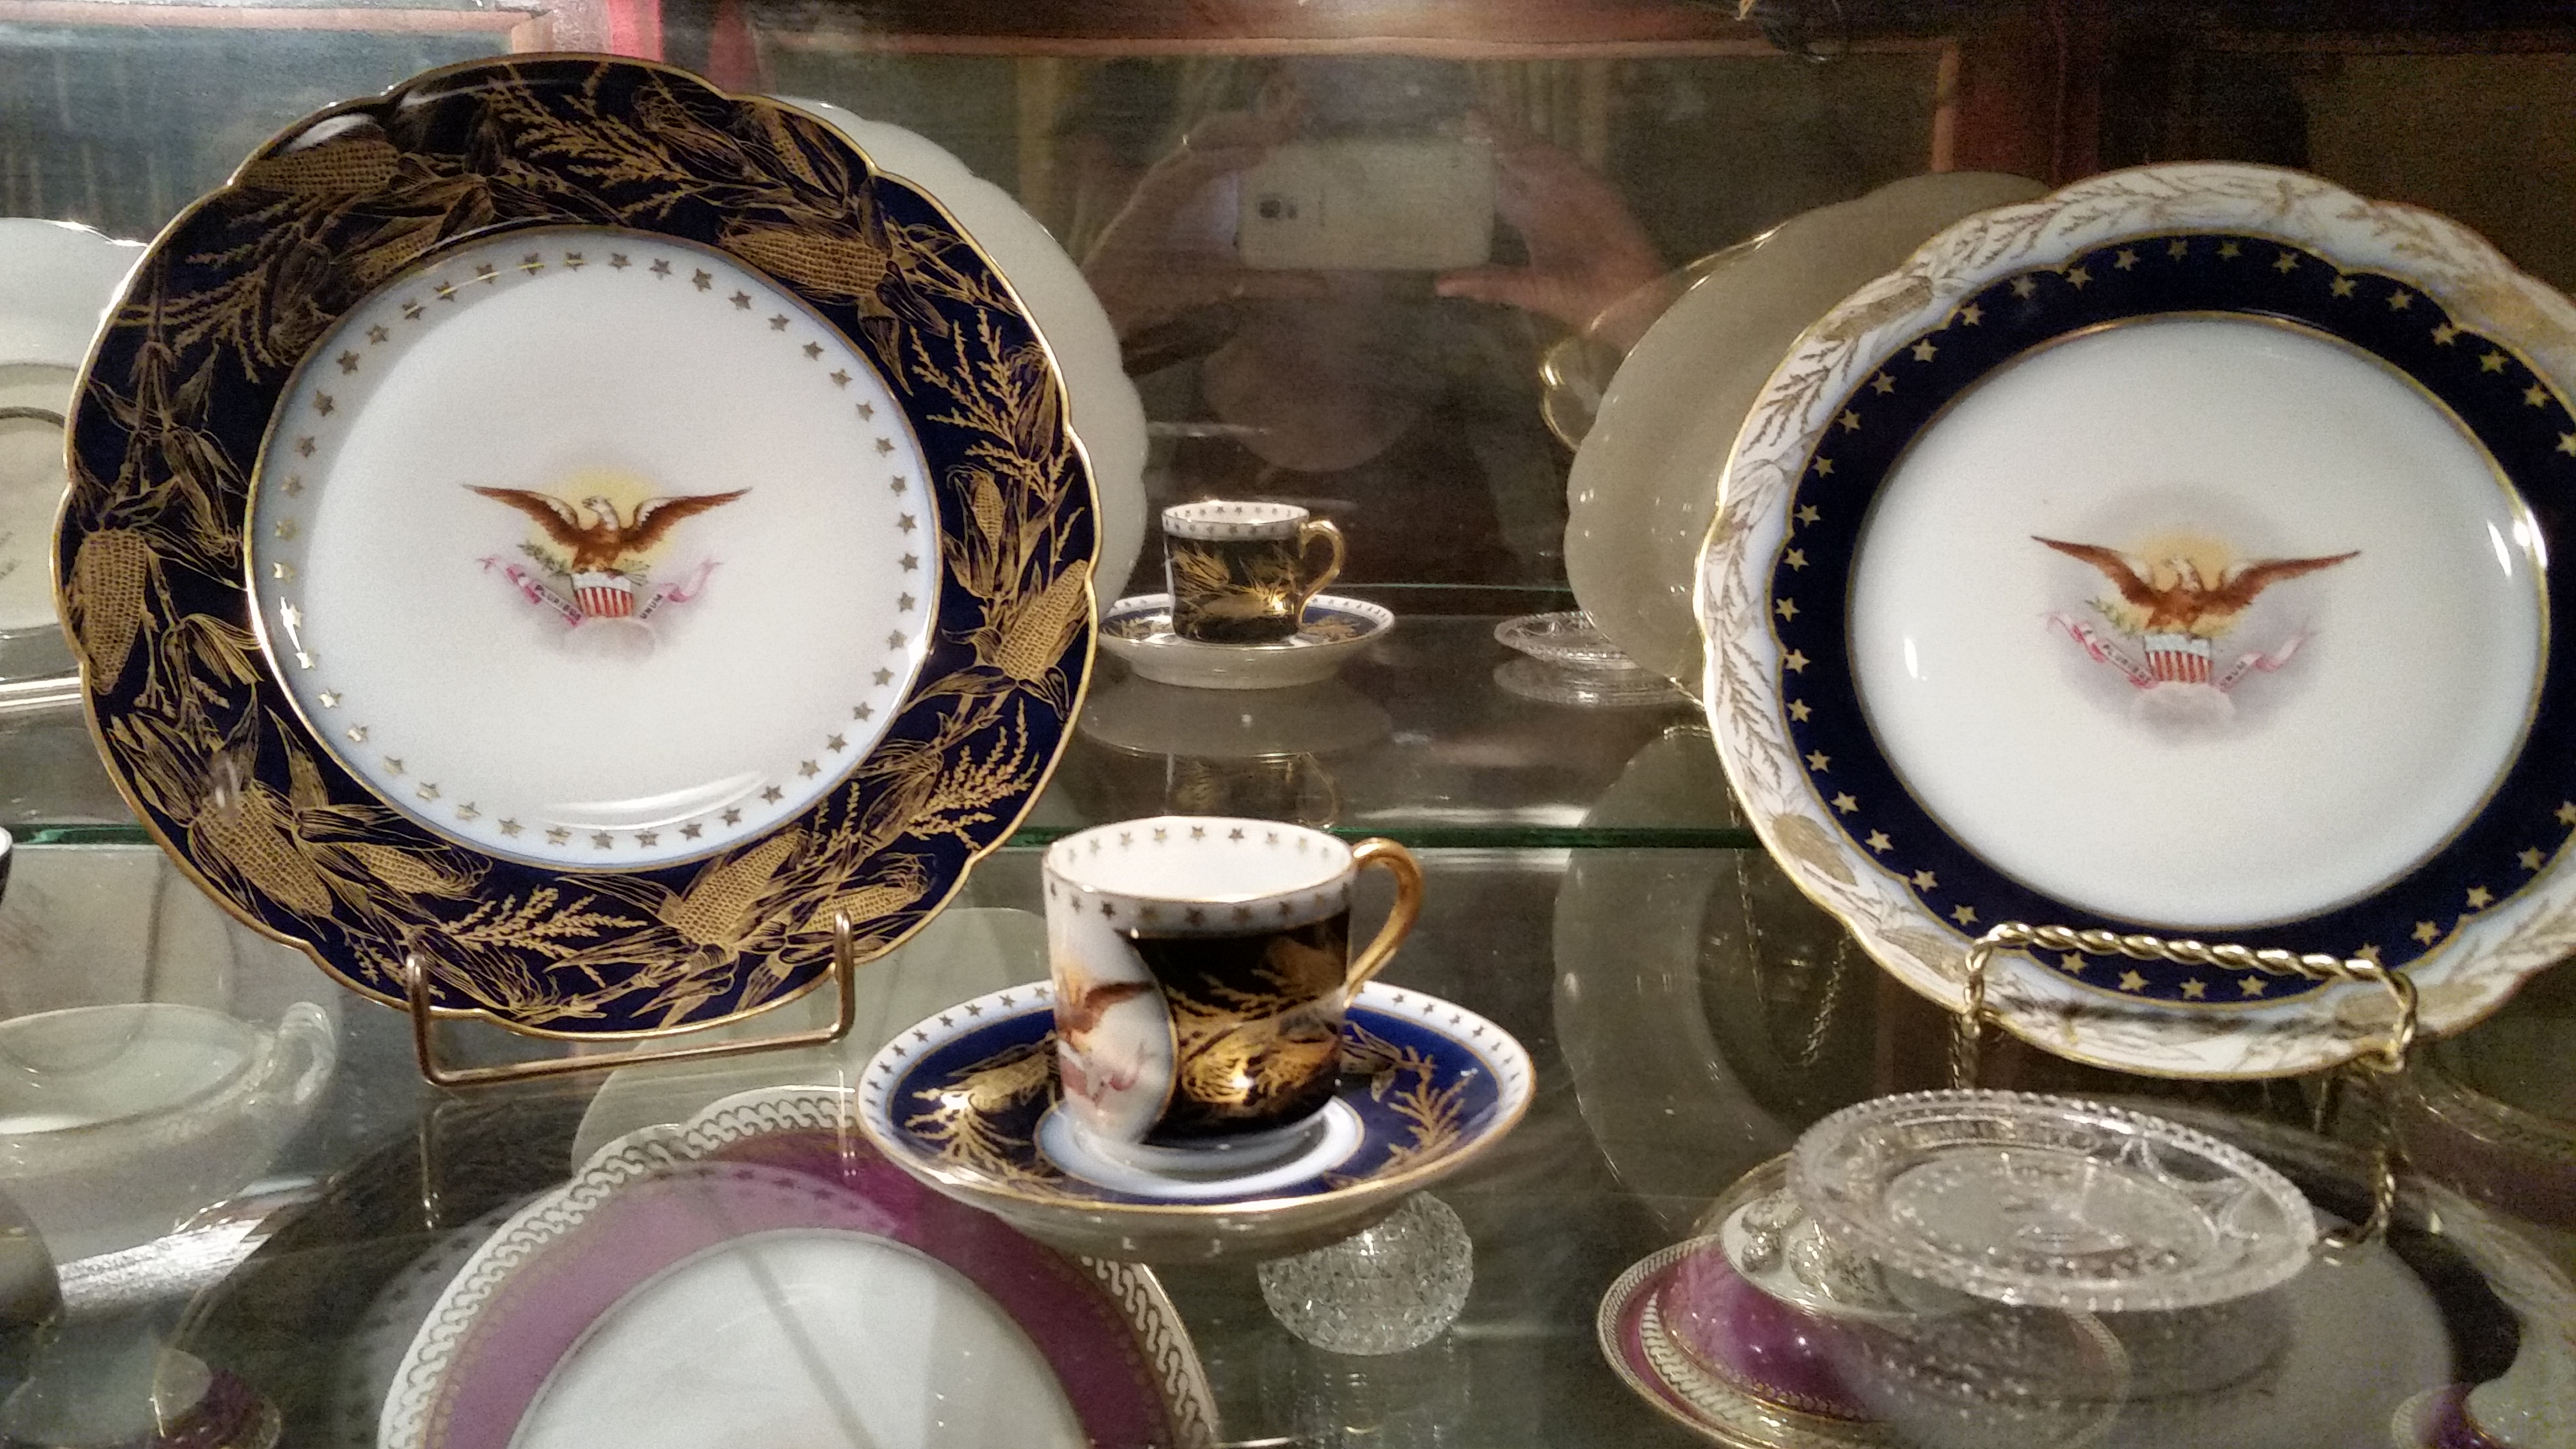 Official presidential dishware